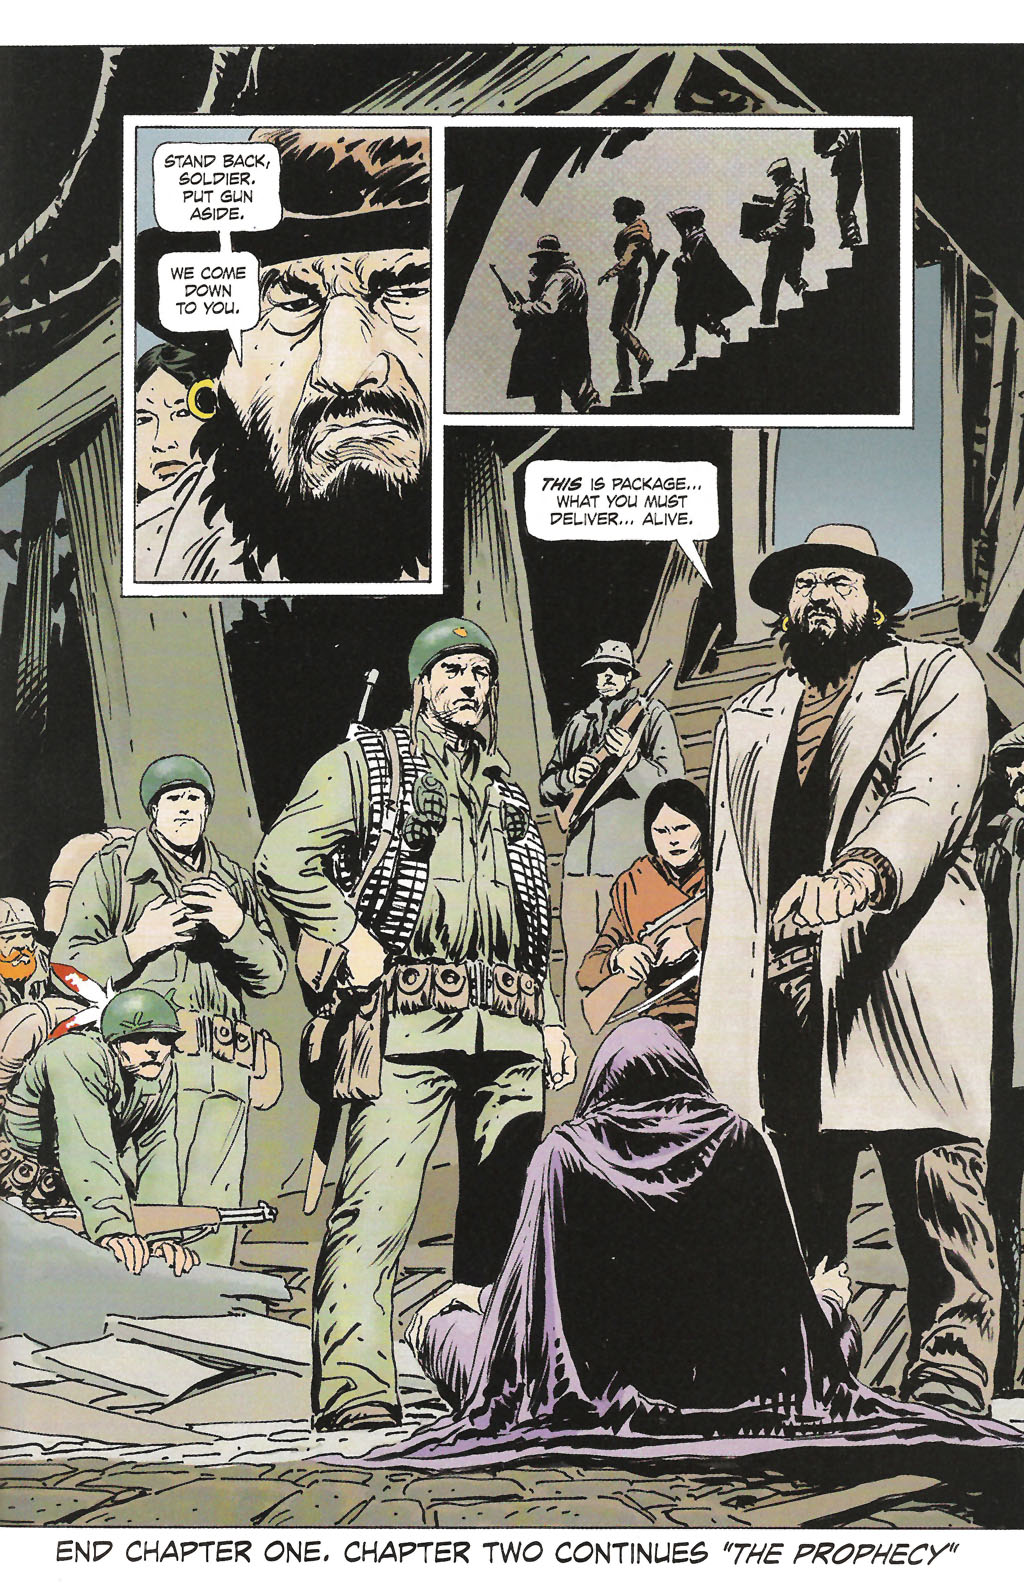 Read online Sgt. Rock: The Prophecy comic -  Issue #1 - 25